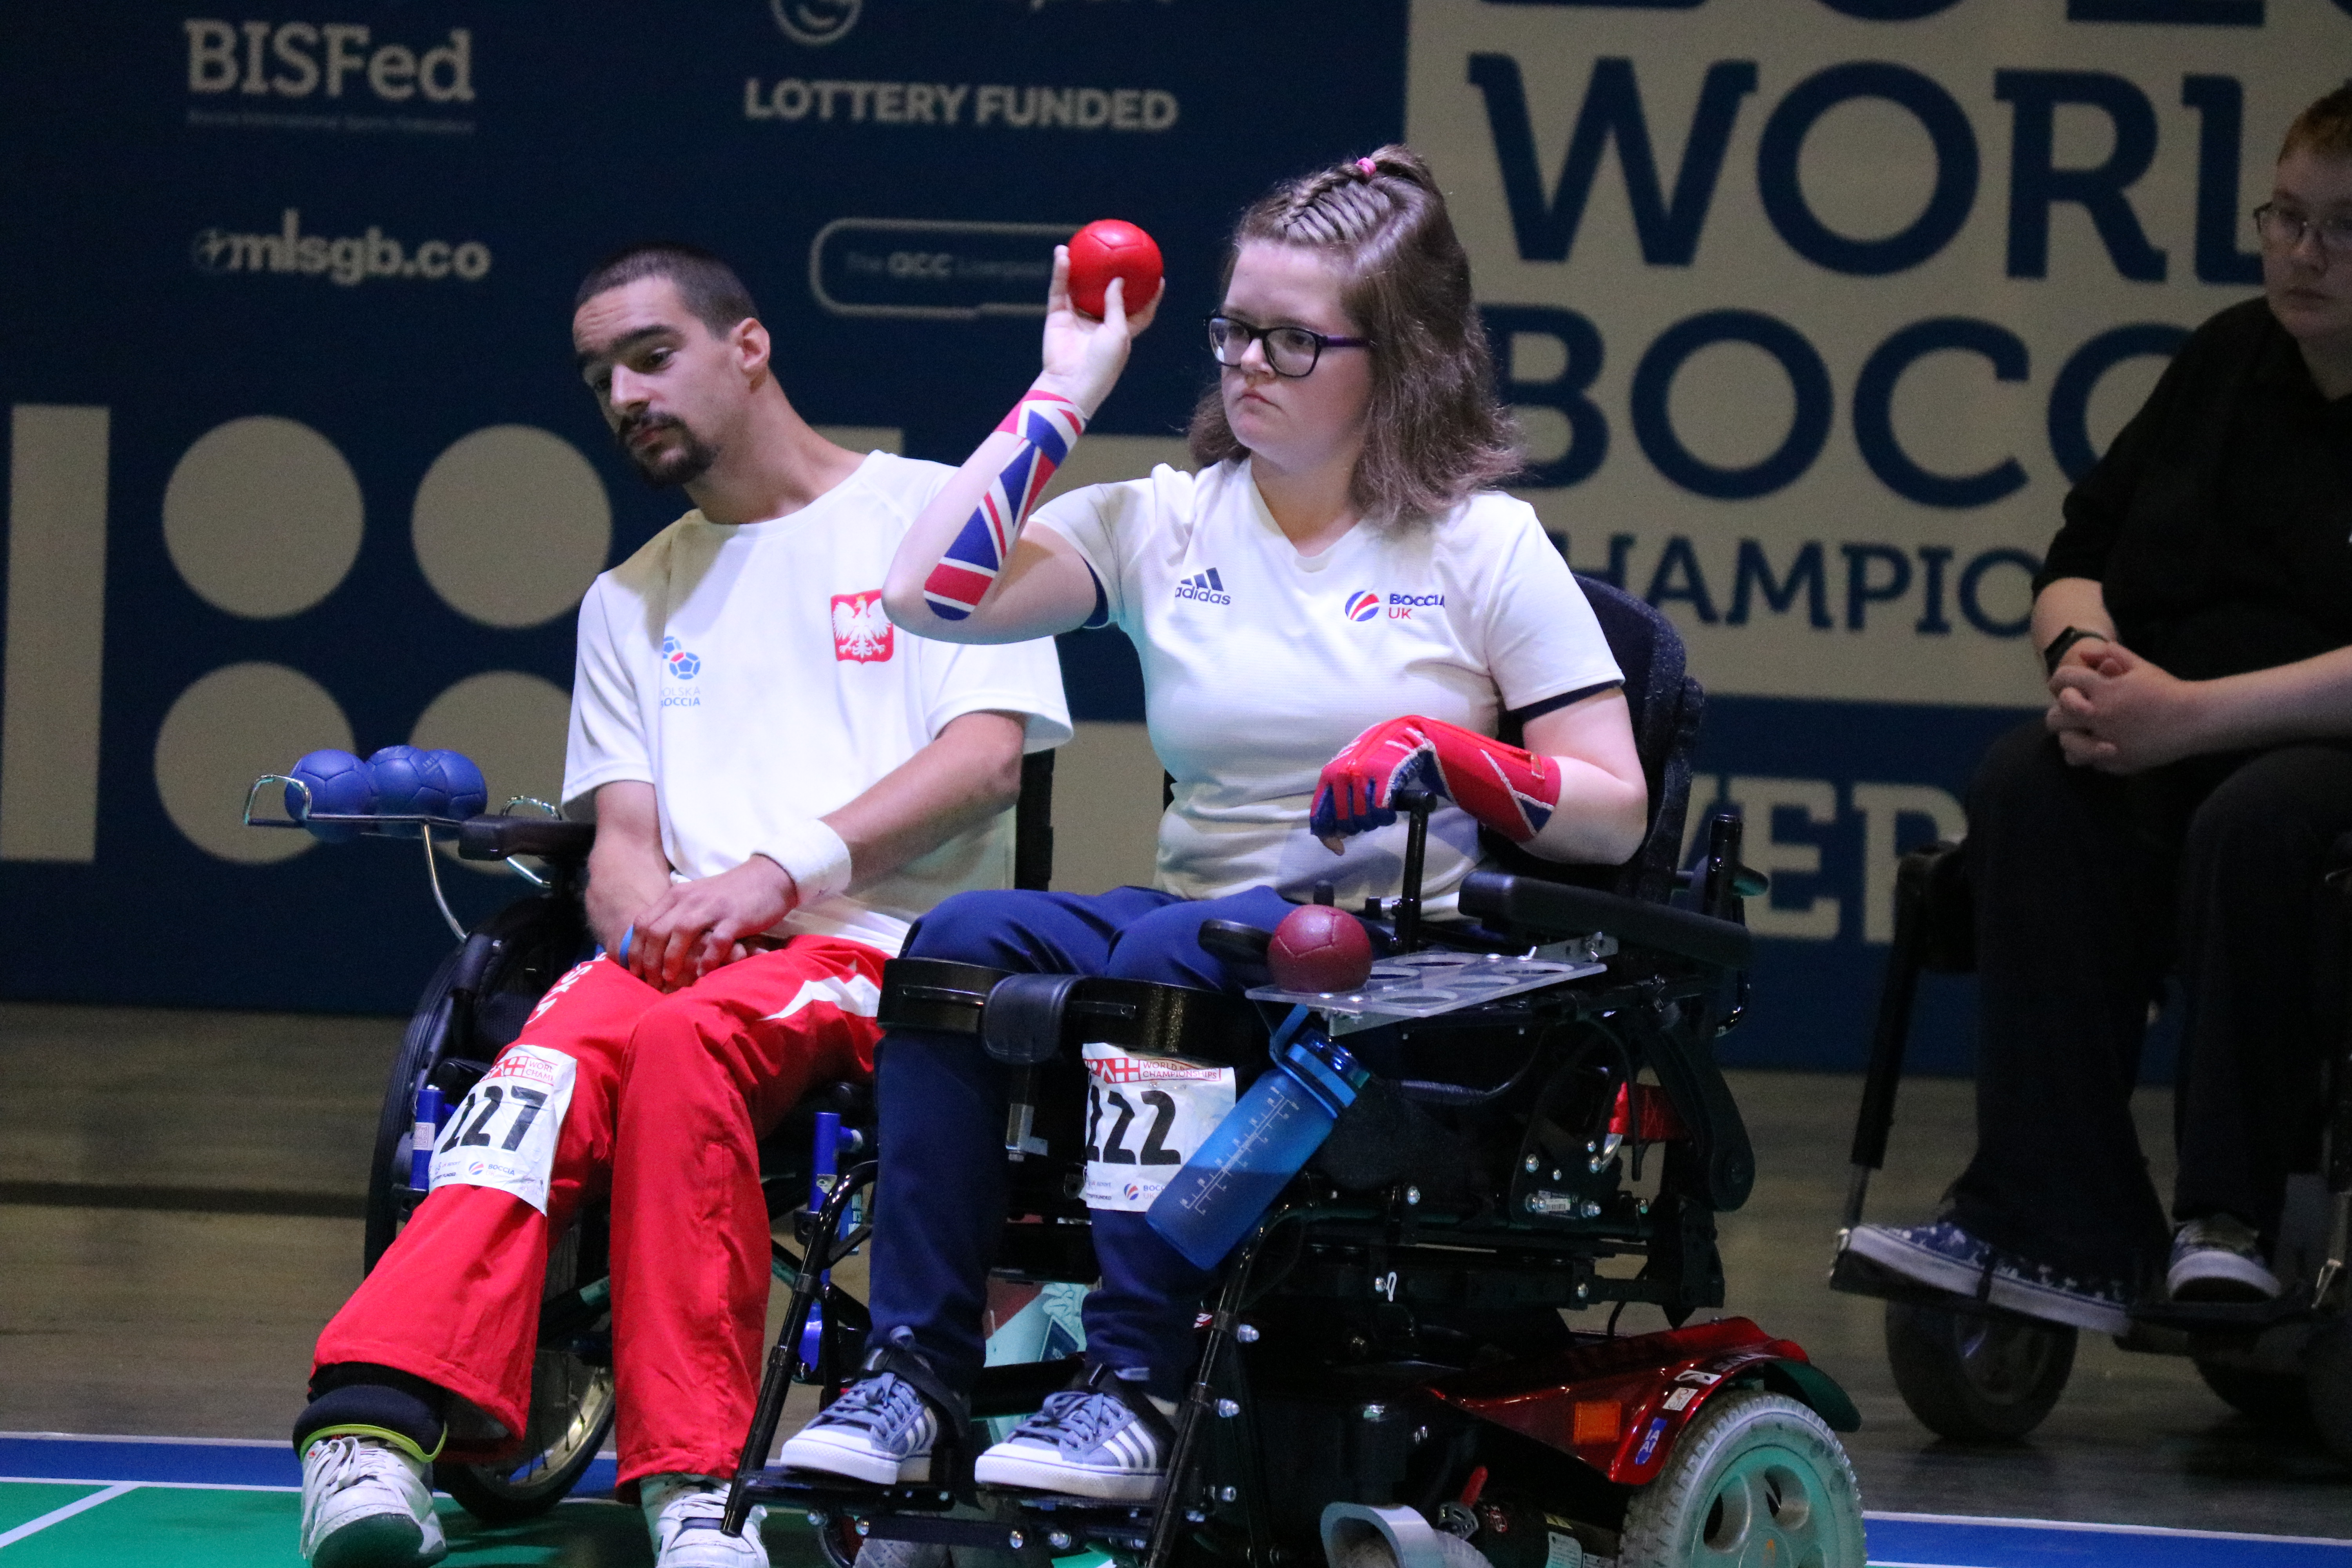 An image of claire in her GB kit about to throw a boccia ball